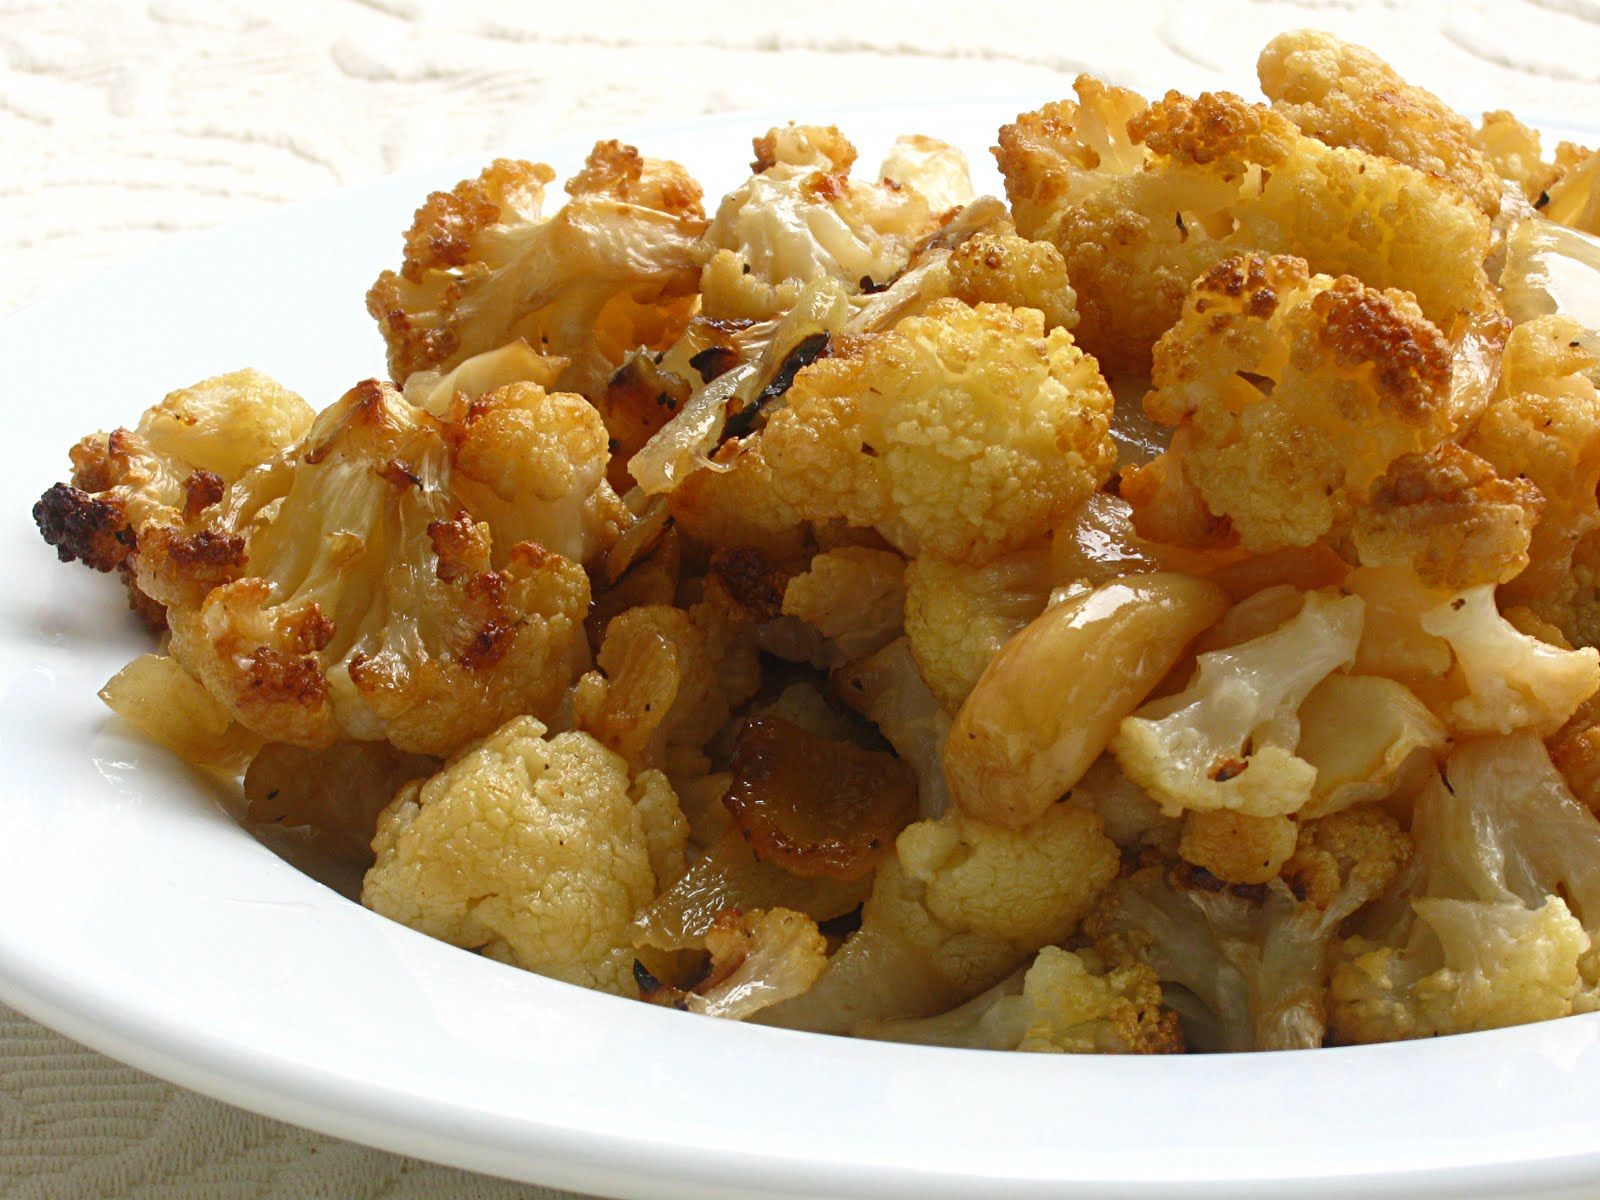 ... Saturday Blog Showcase #13 - Oven Roasted Cauliflower, Onions & Garlic